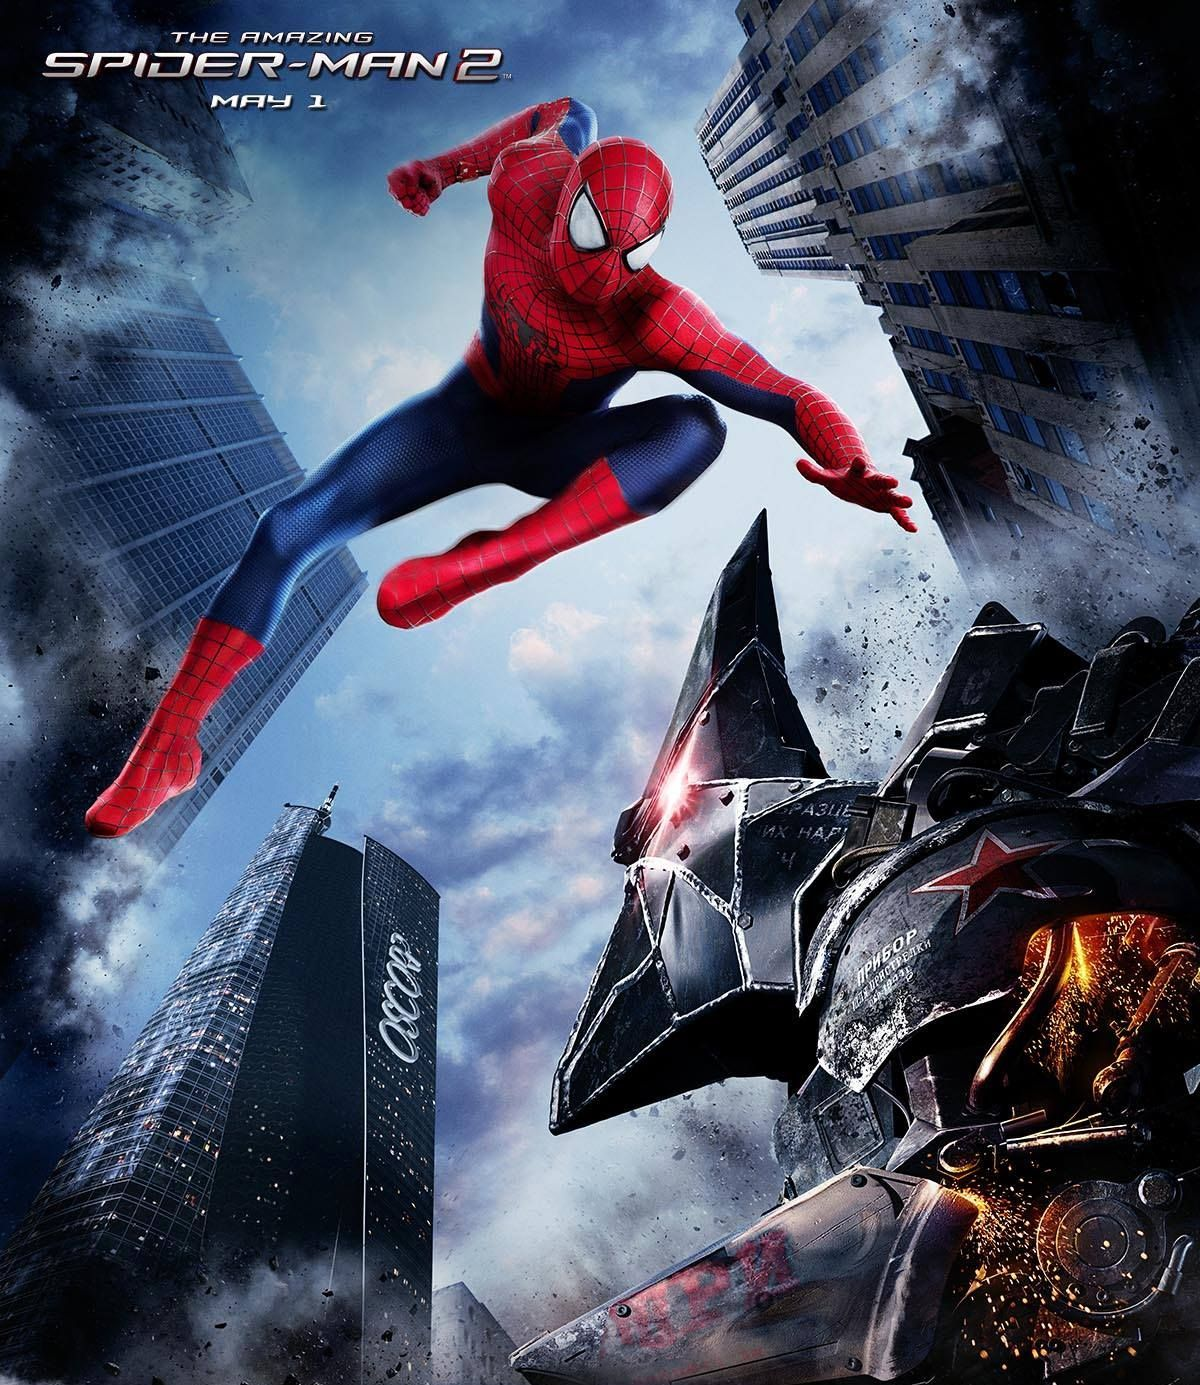 The Rhino in a New The Amazing Spider-Man 2 Promo Image